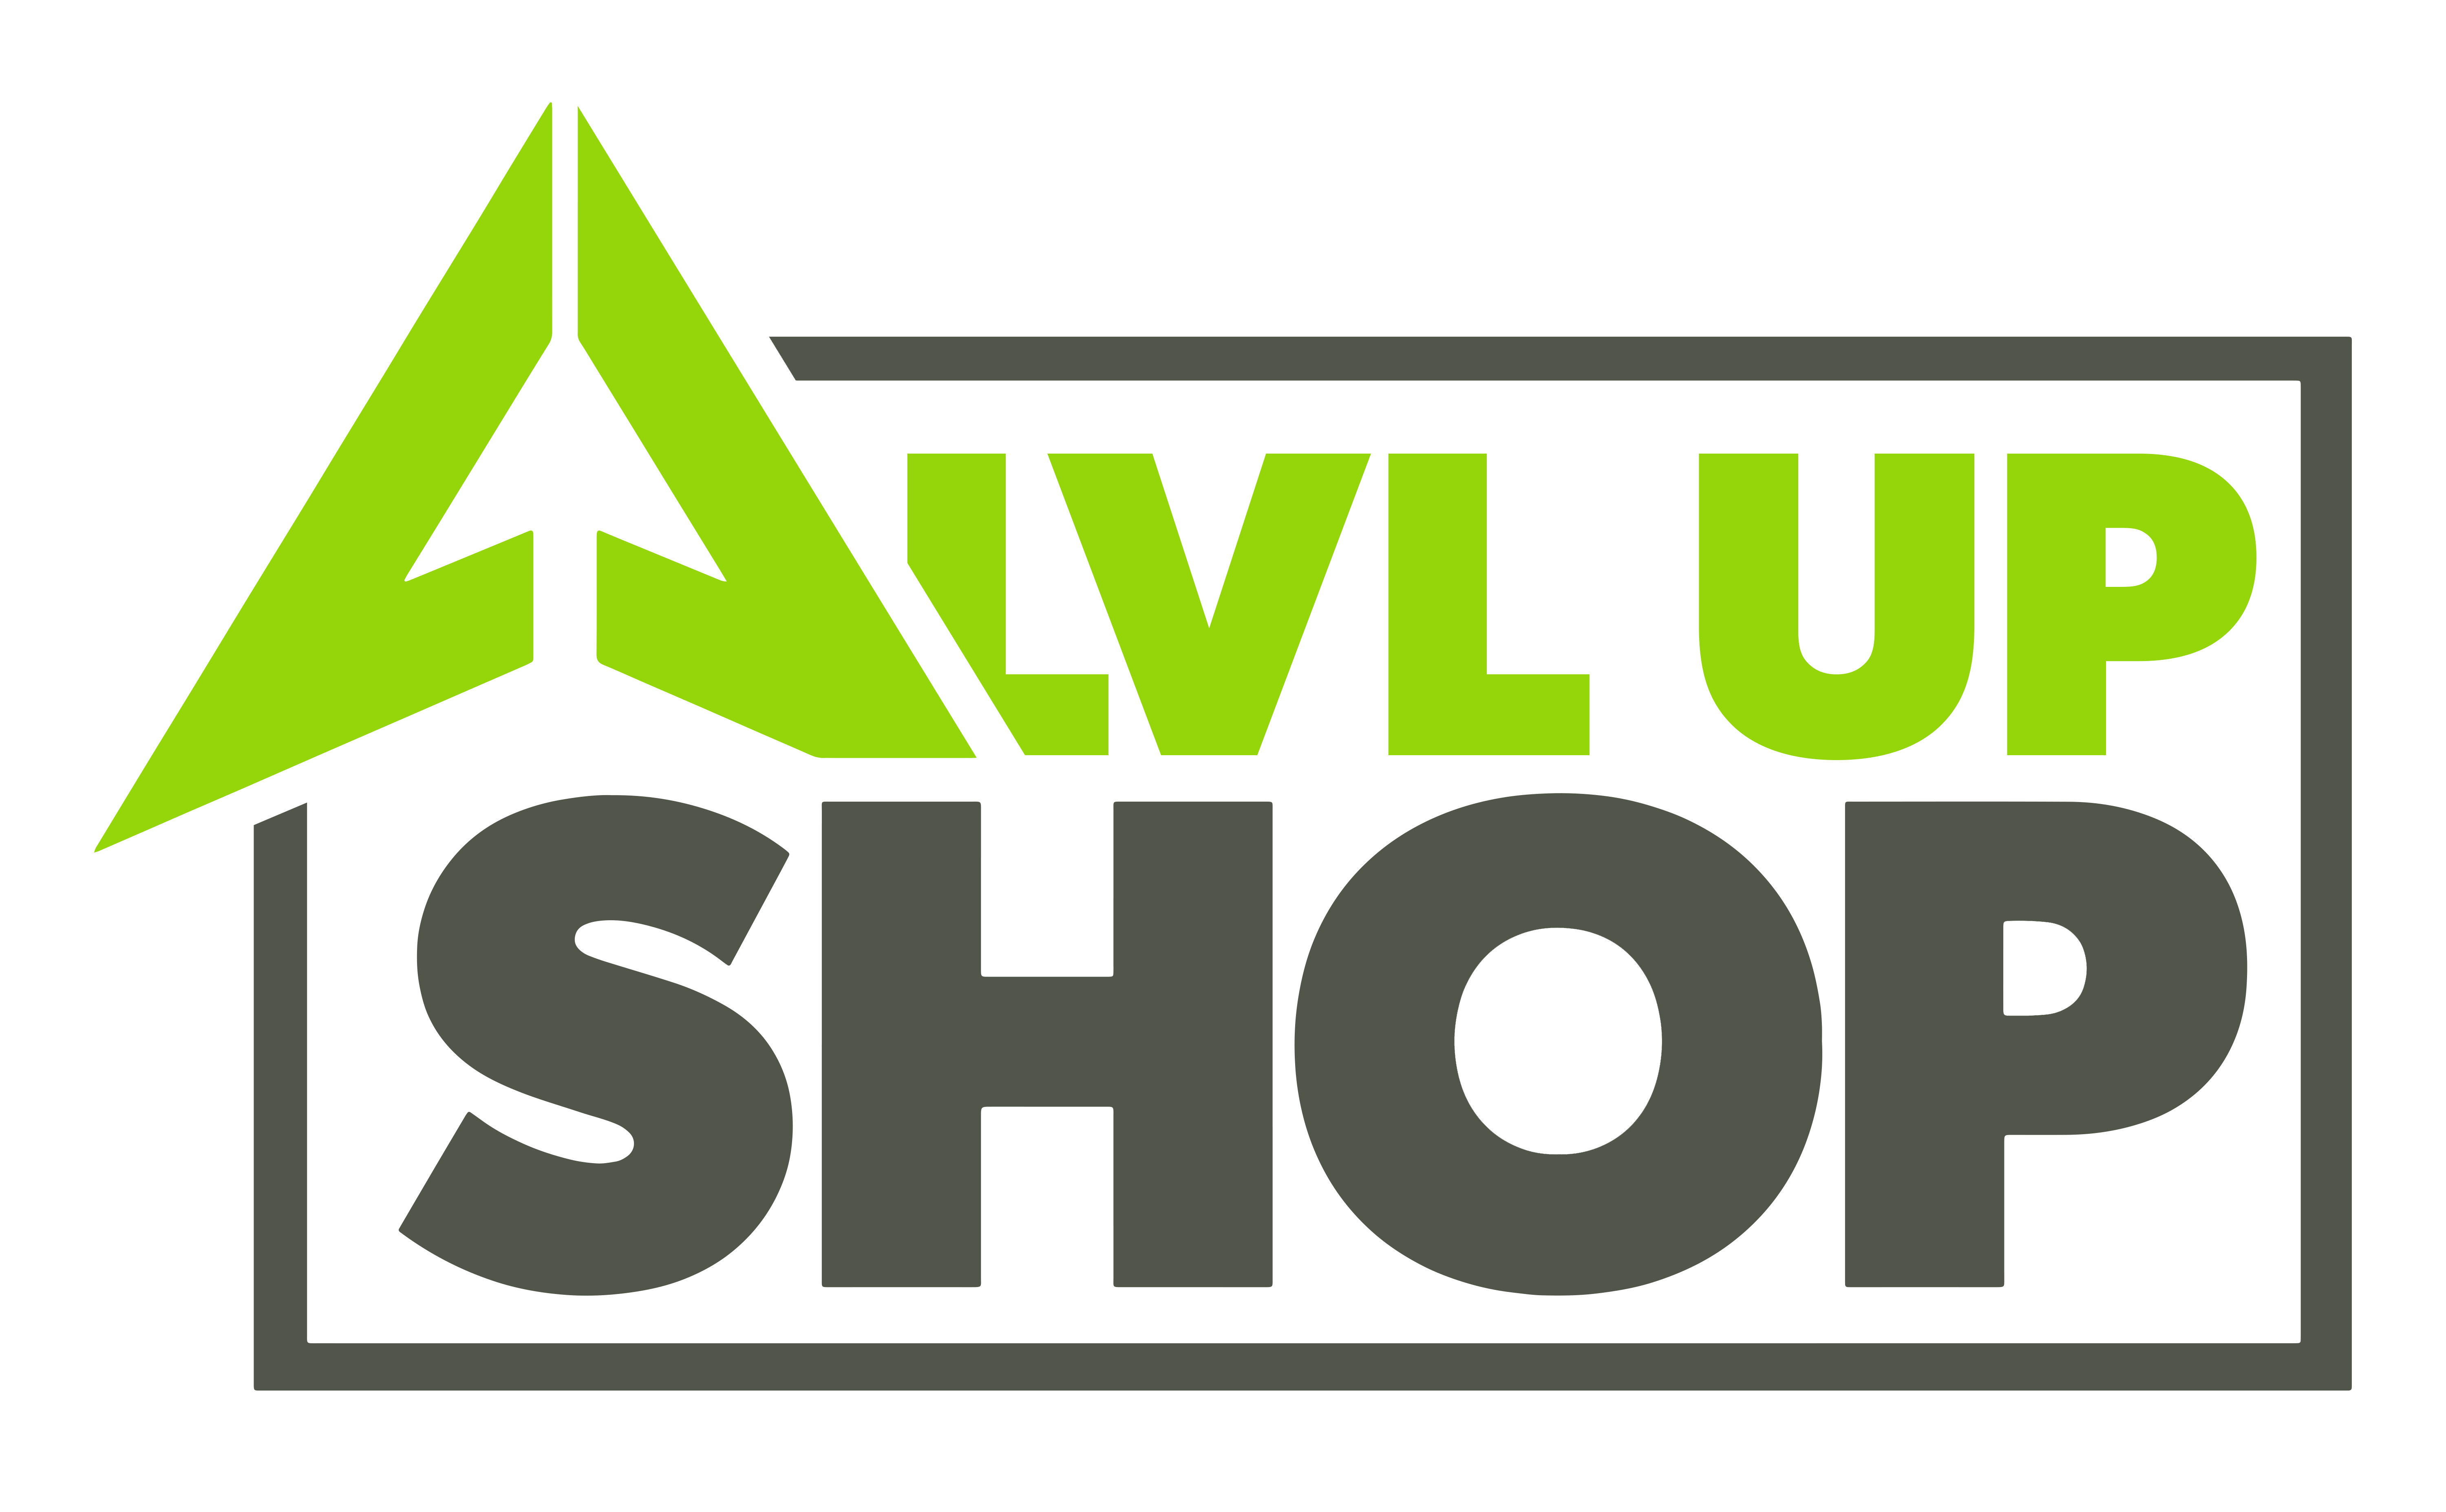 lvl_up_shop_logo